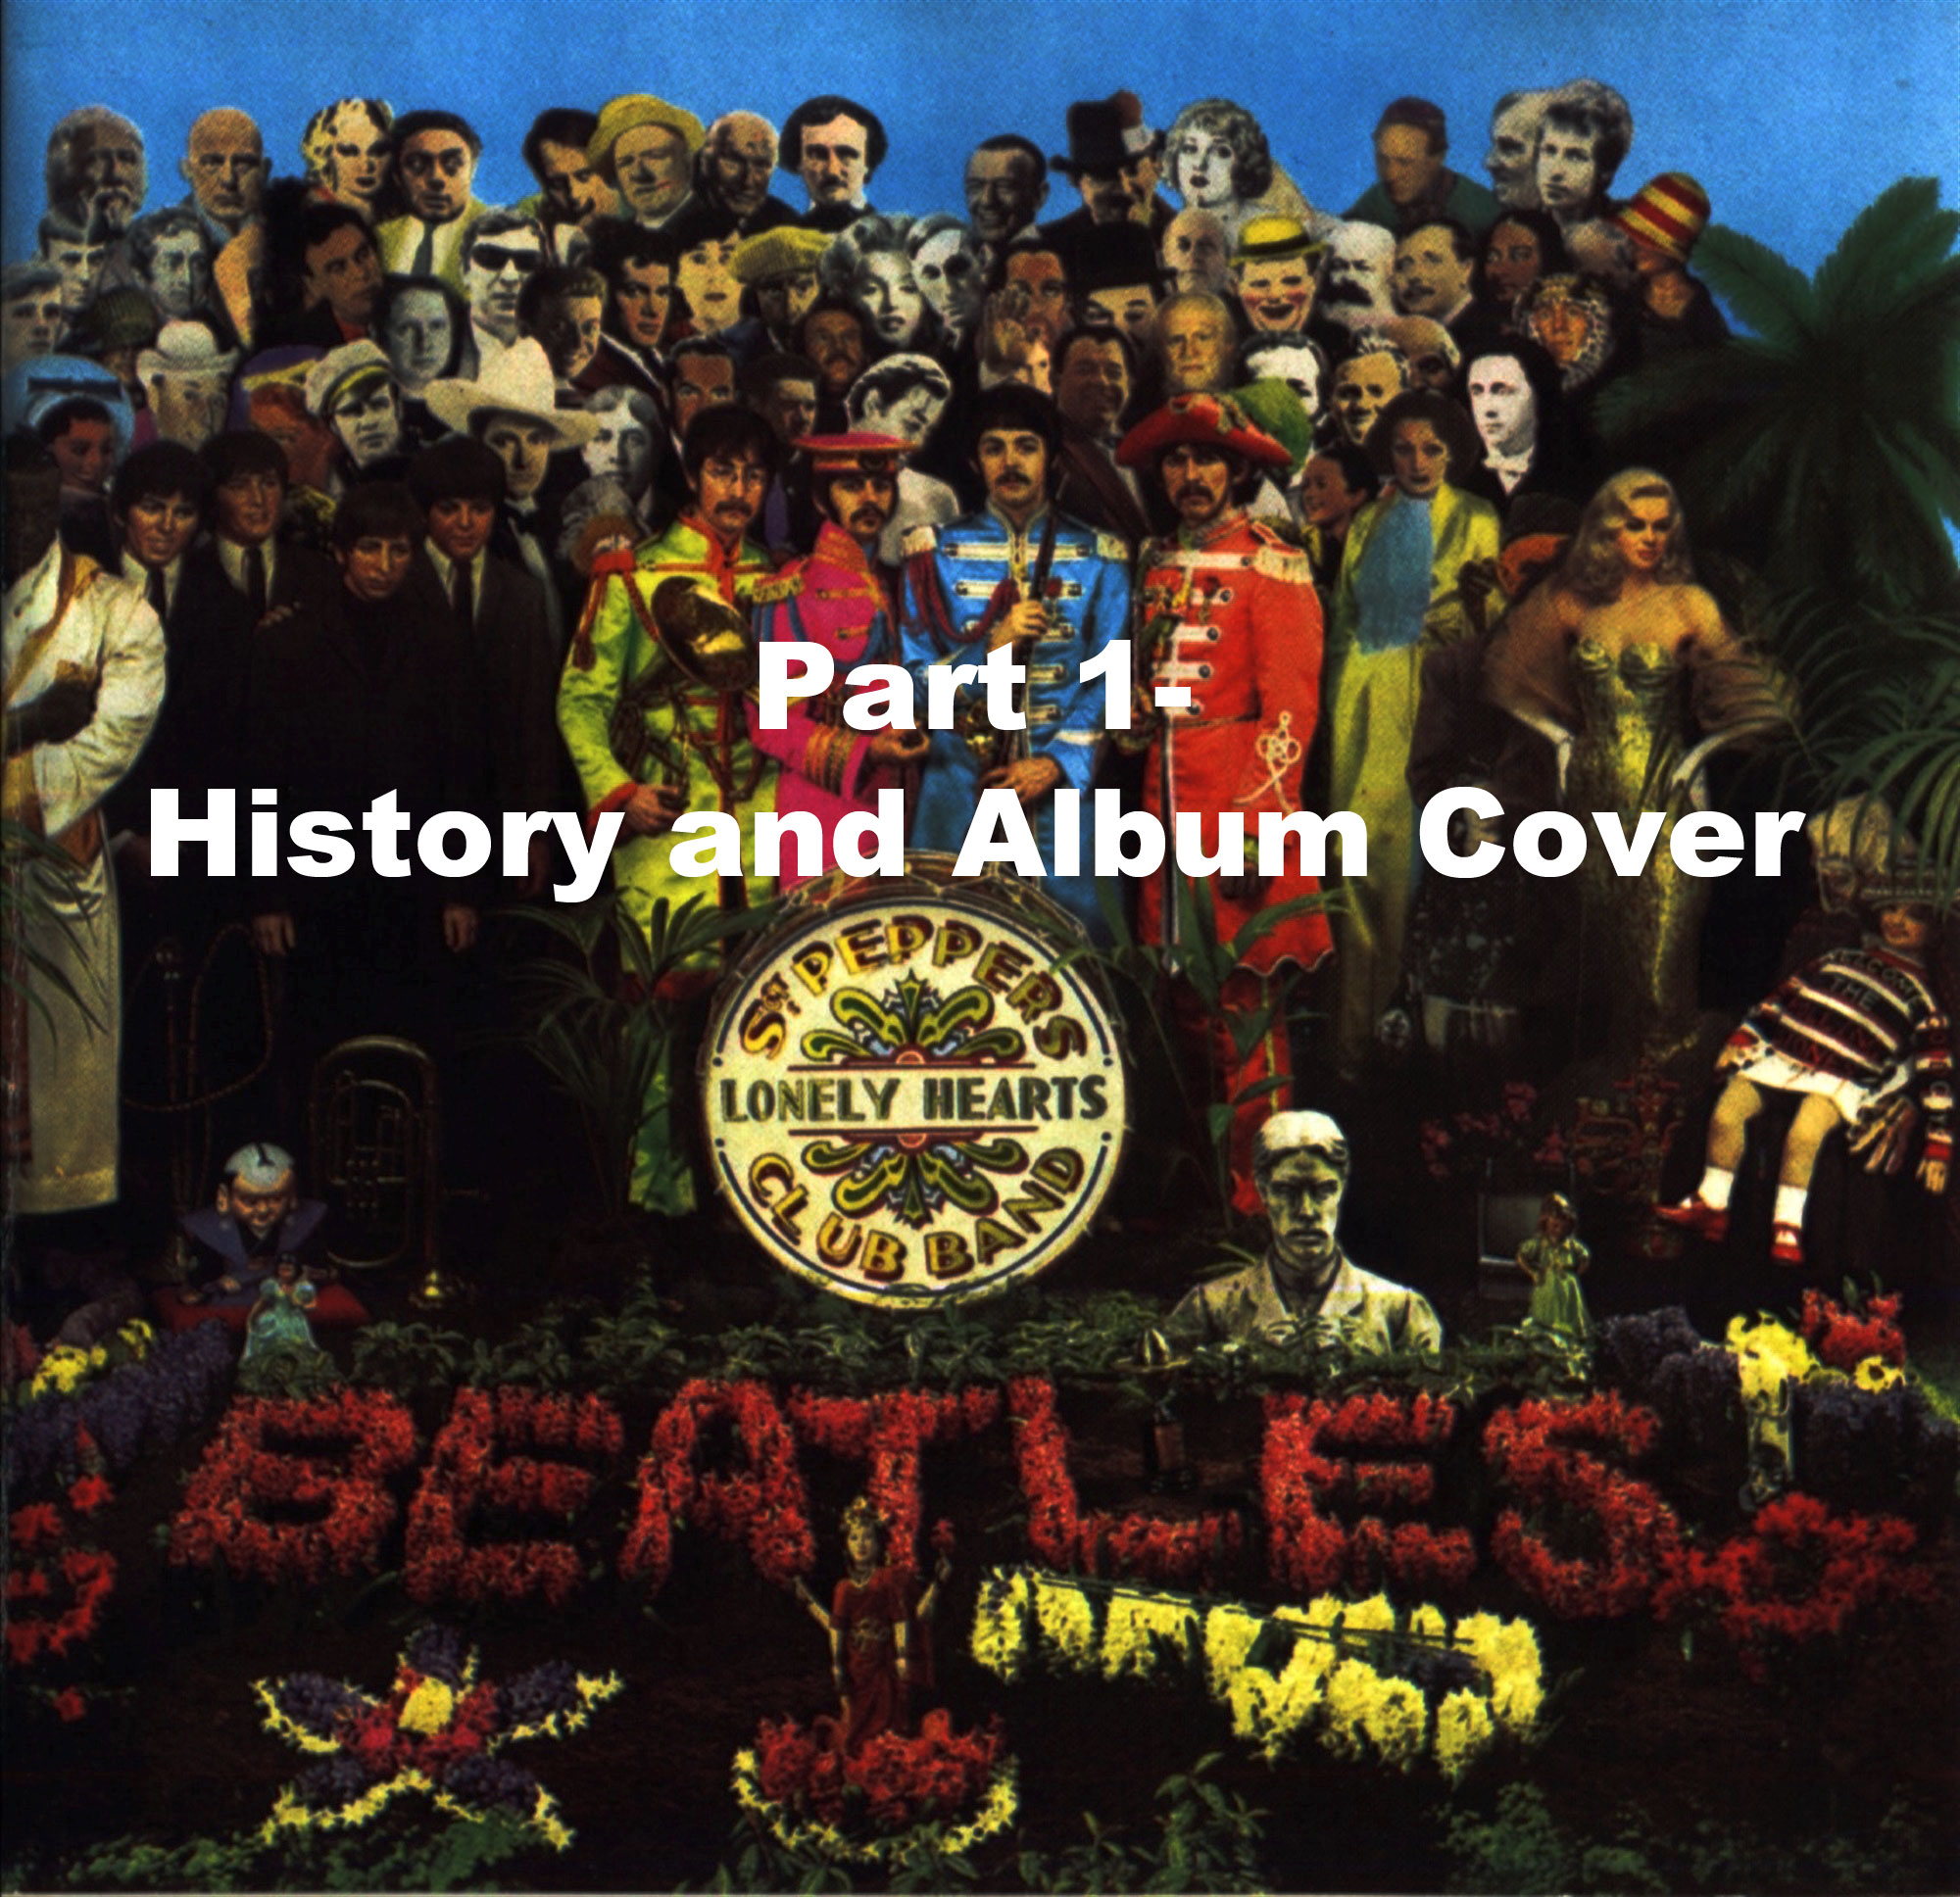 Sgt. Pepper (Part 1-History and Album Cover)